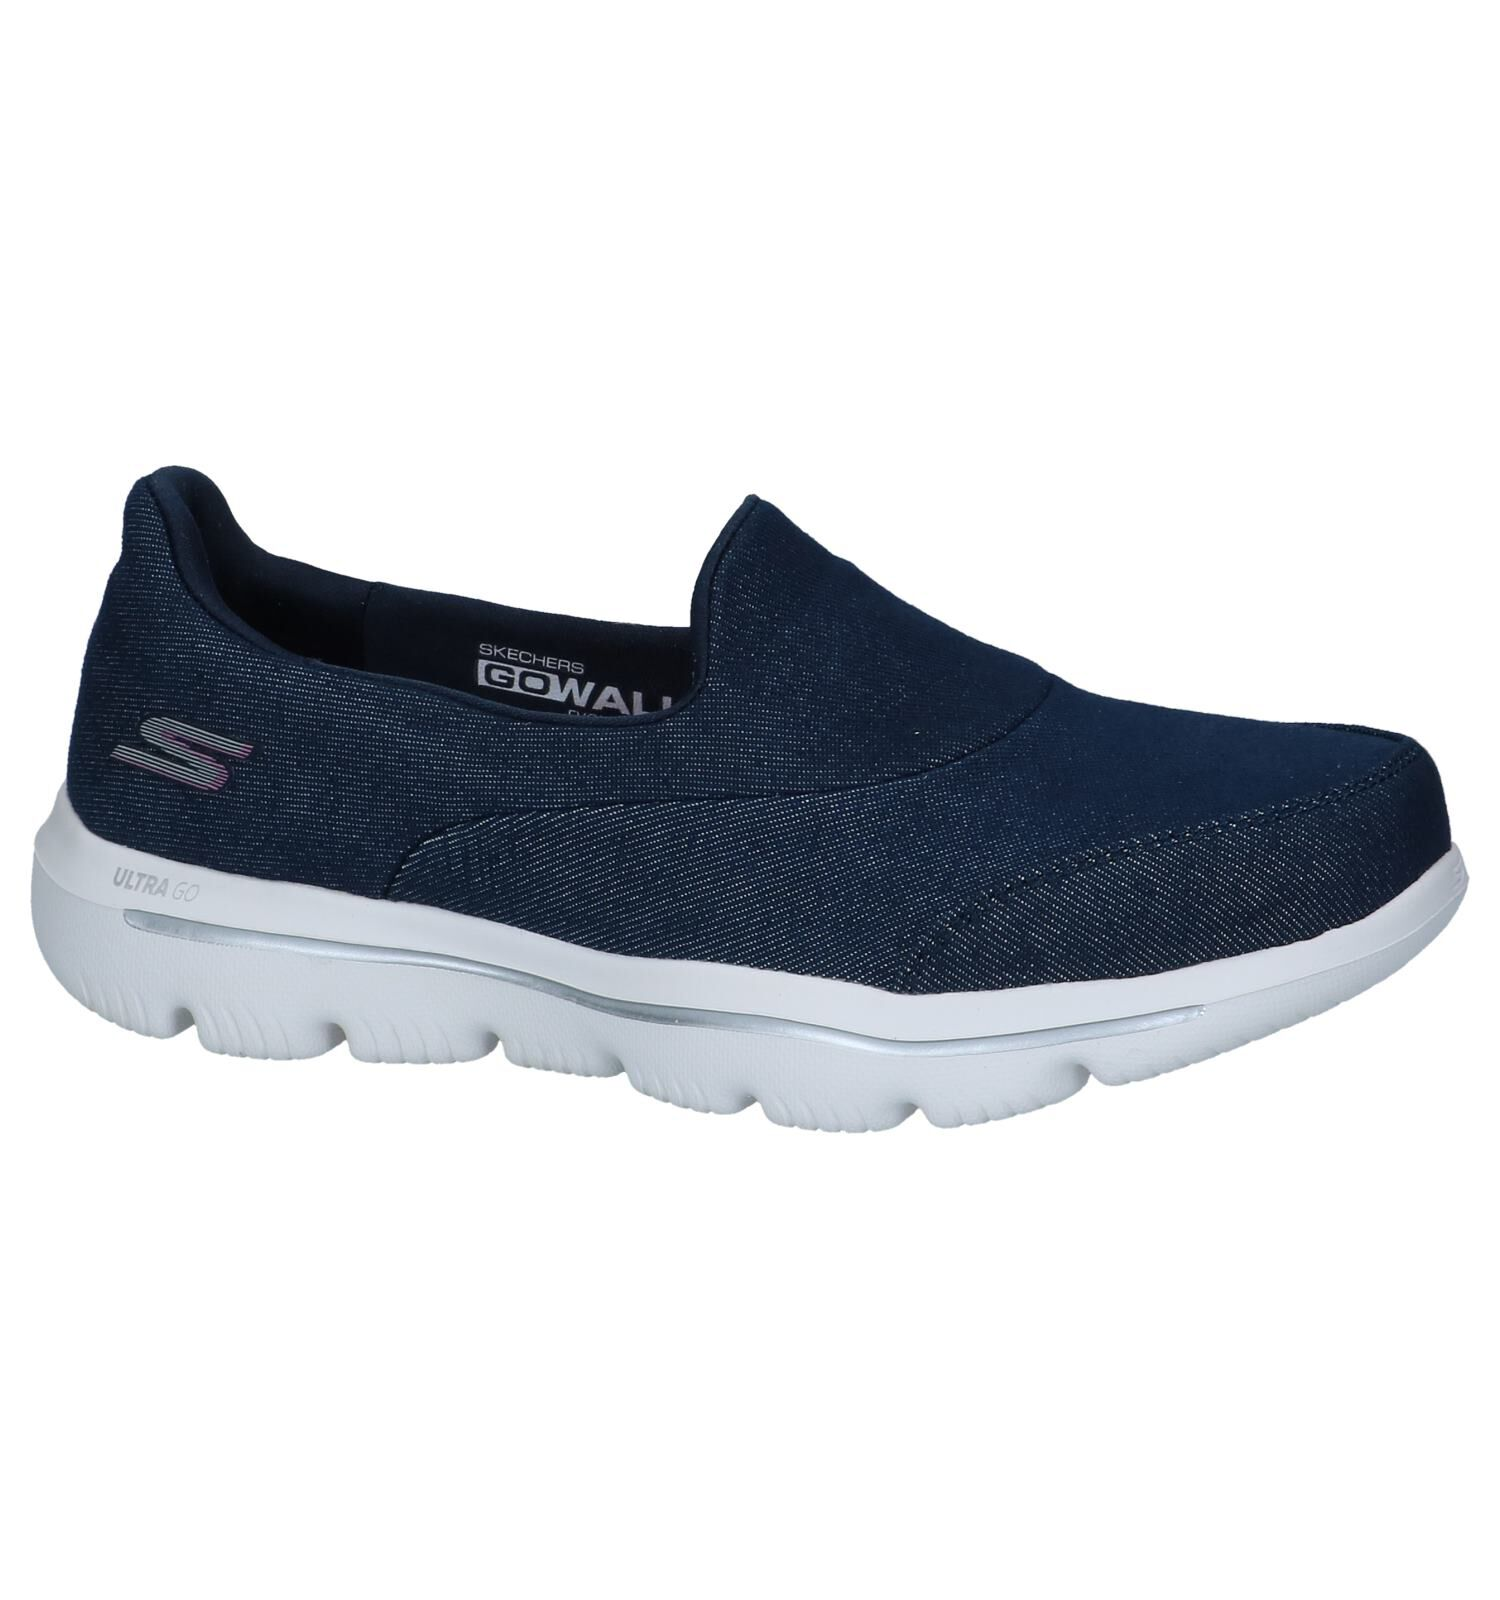 SKECHERS Womens GOwalk 3 Creation Slip On Trainers NavyBlue